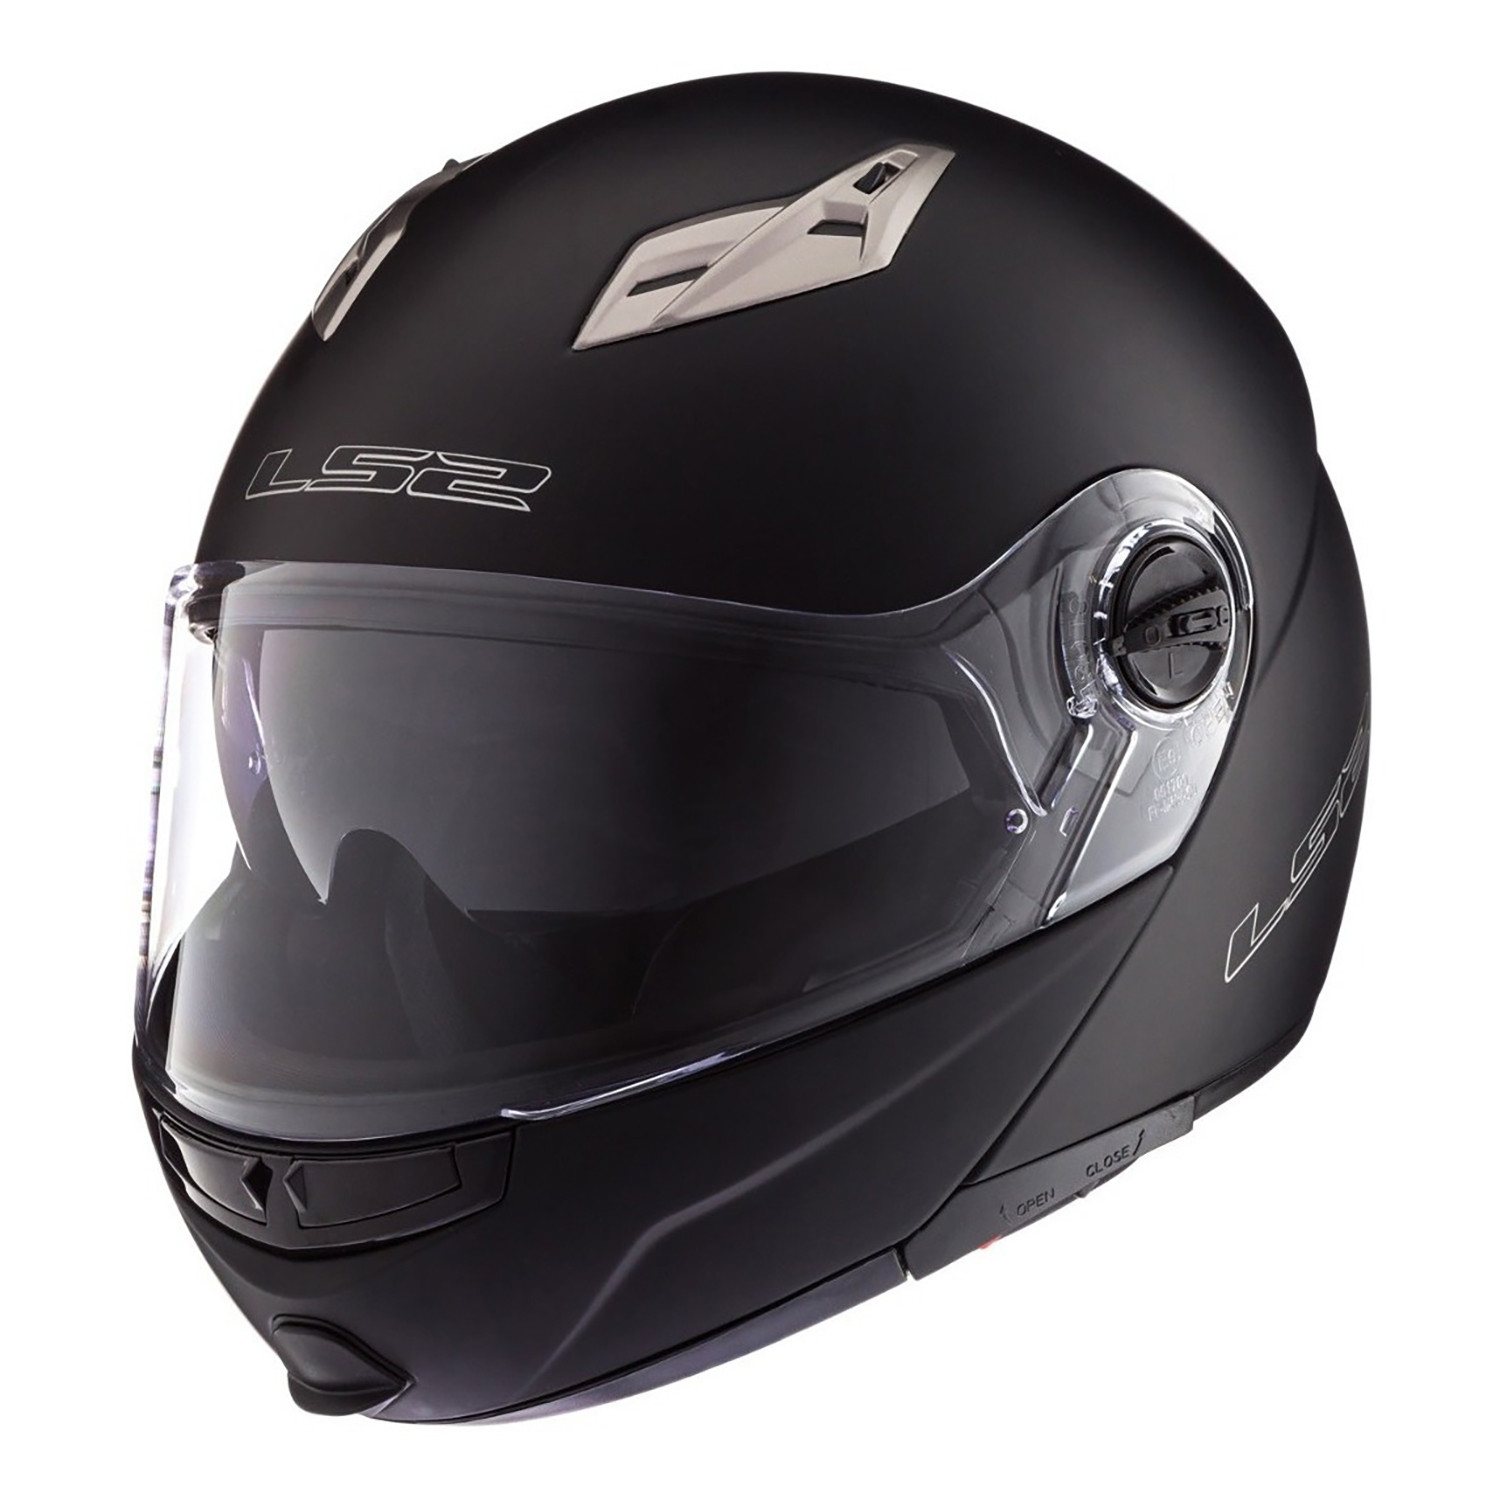 Casco Rebatible LS2 FF 370 Easy Negro Mate